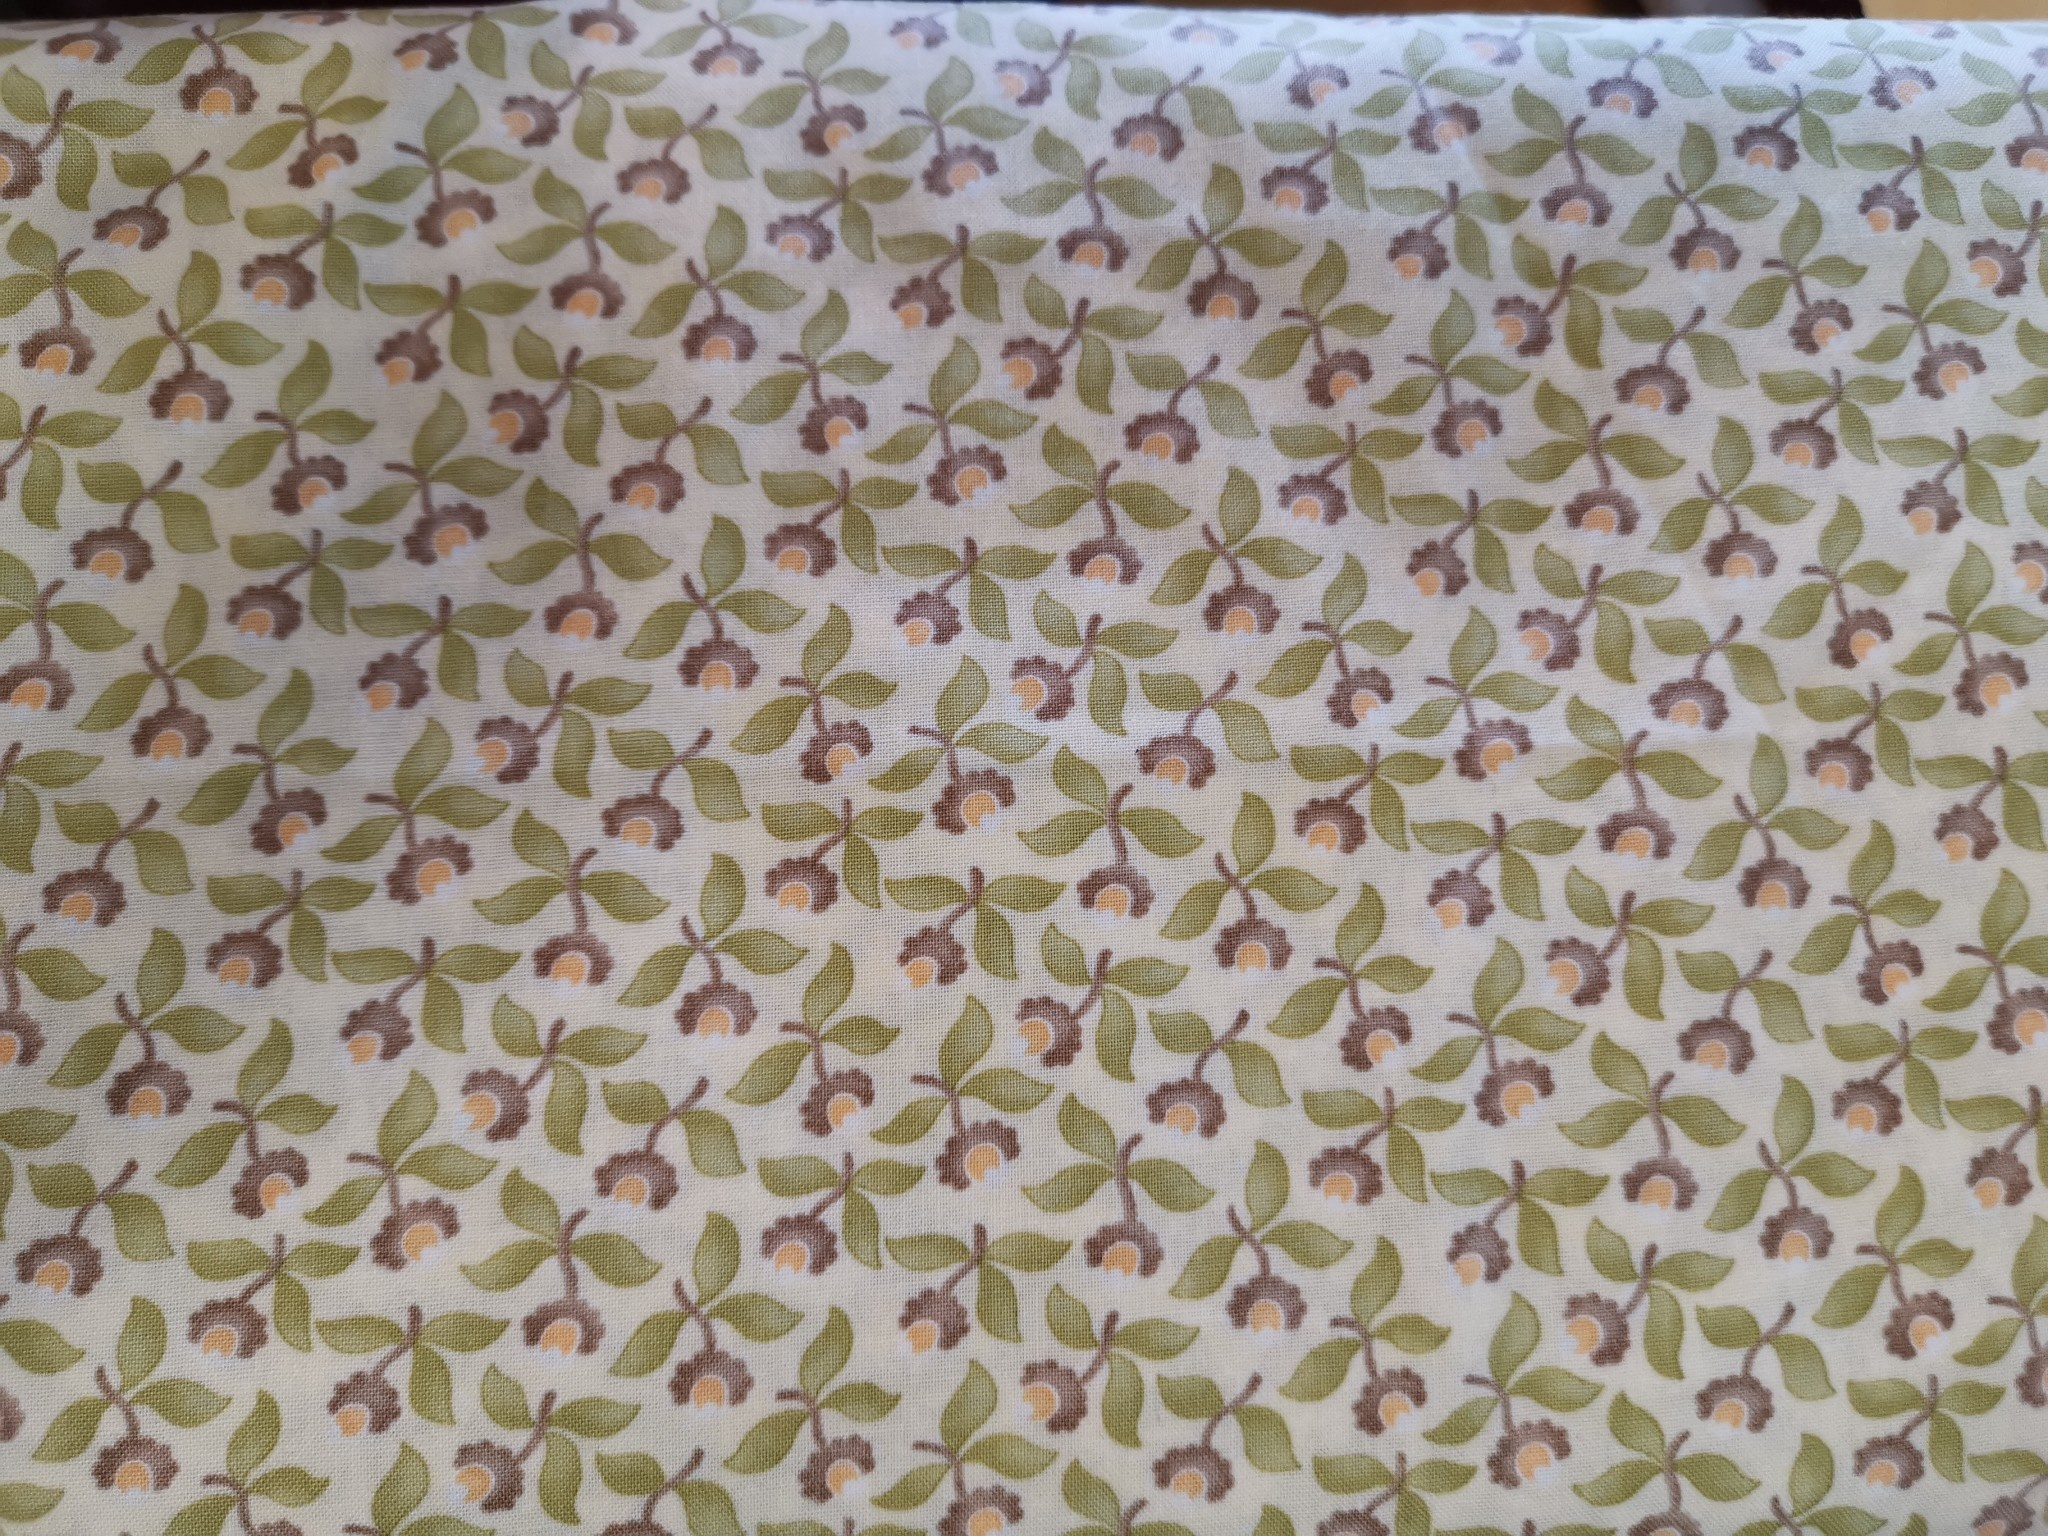 MODA Flowers PER CM OR $15/M TAPESTRY BY MODA NOW 12